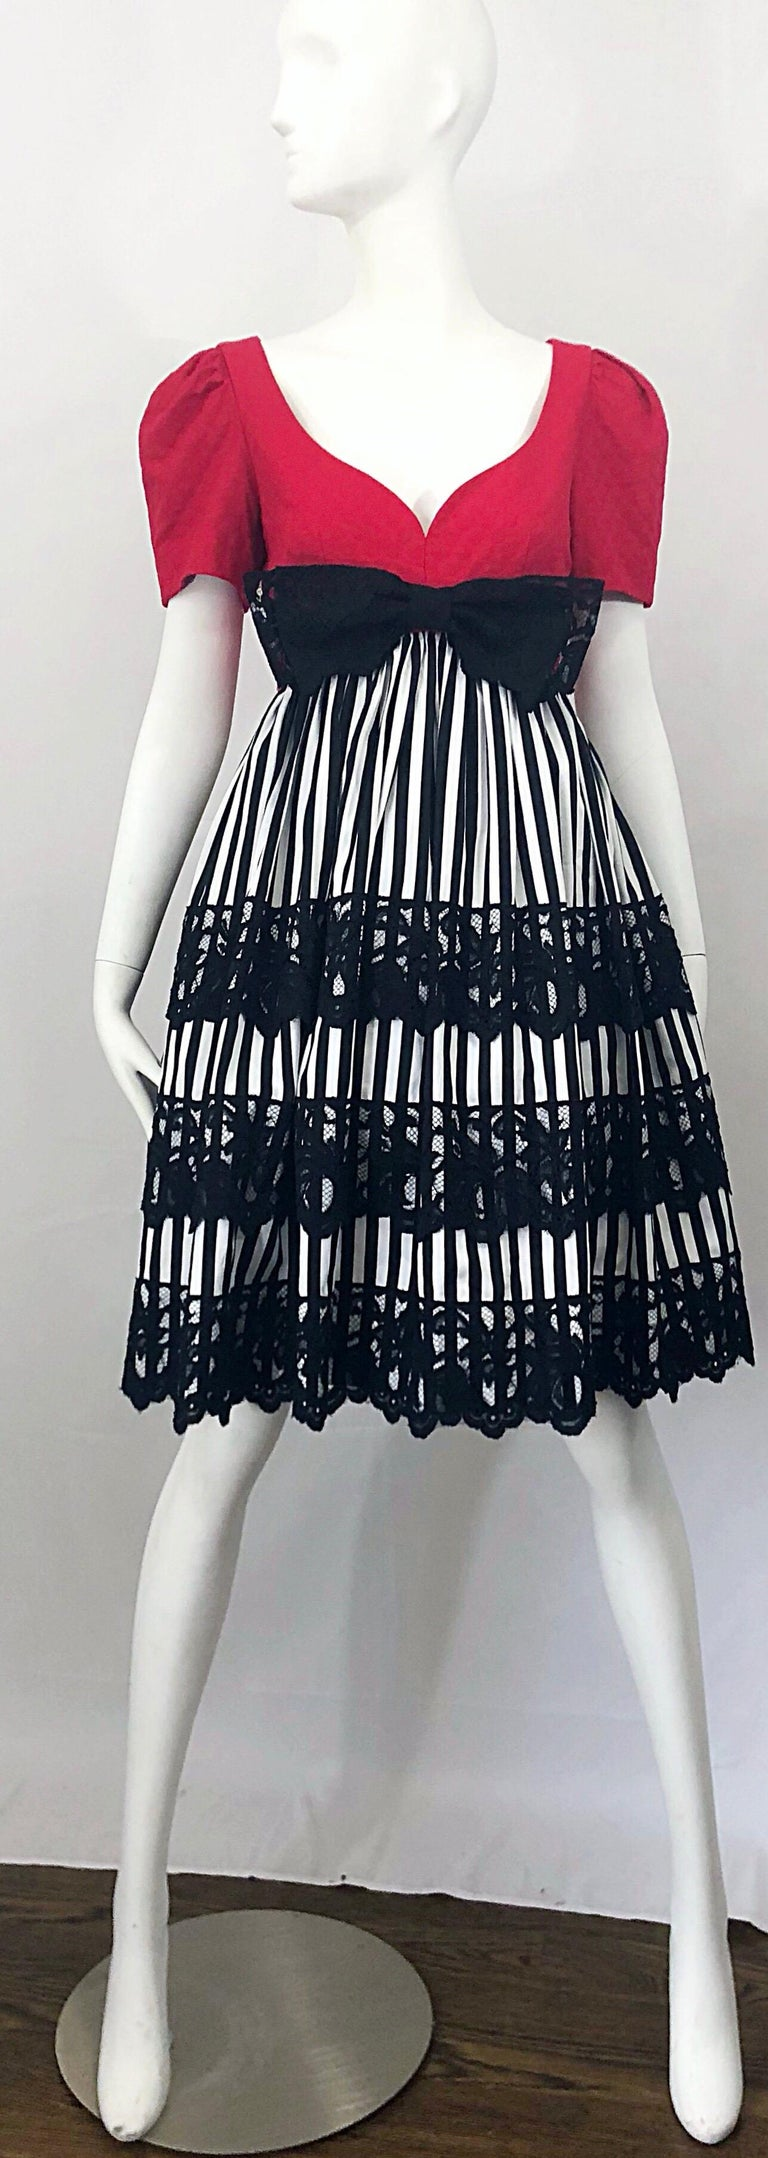 Vintage Adele Simpson Red + Black + White Fit n' Flare Empire Bow Lace Dress For Sale 10